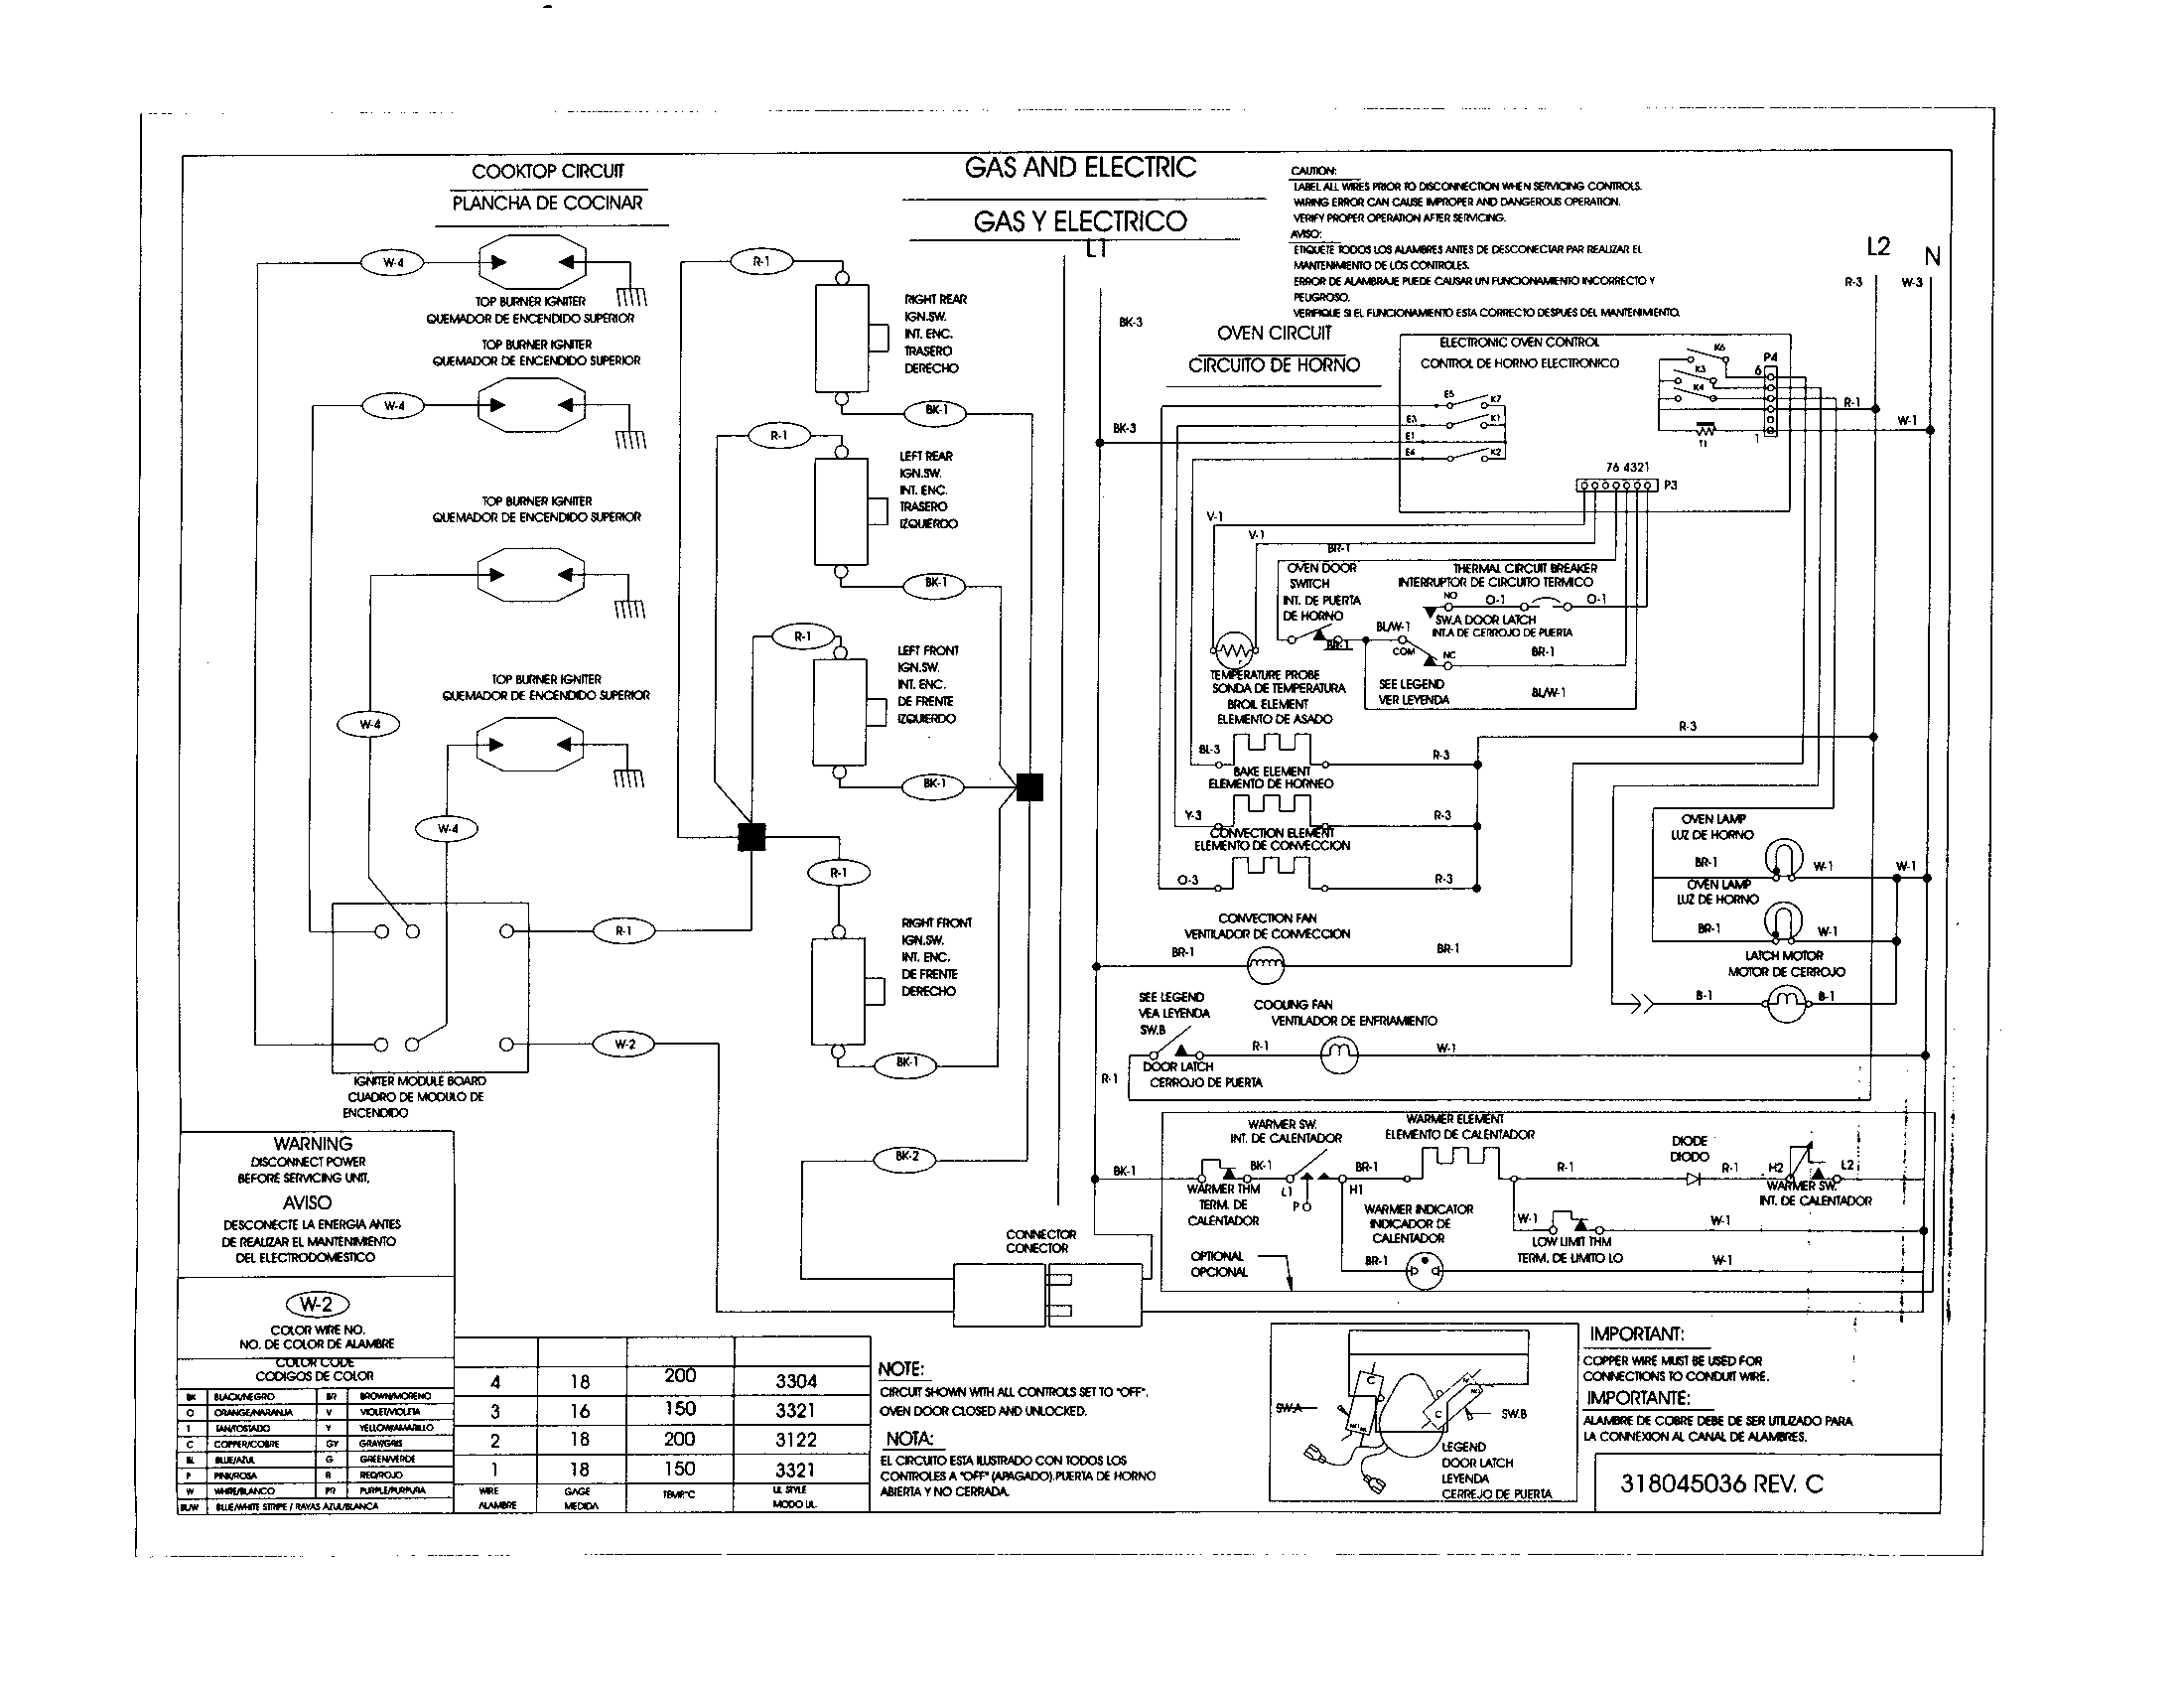 Wiring Diagram Vespa Px 150 Salam Makersc1stvespa Maker Free 200 All Power Generator